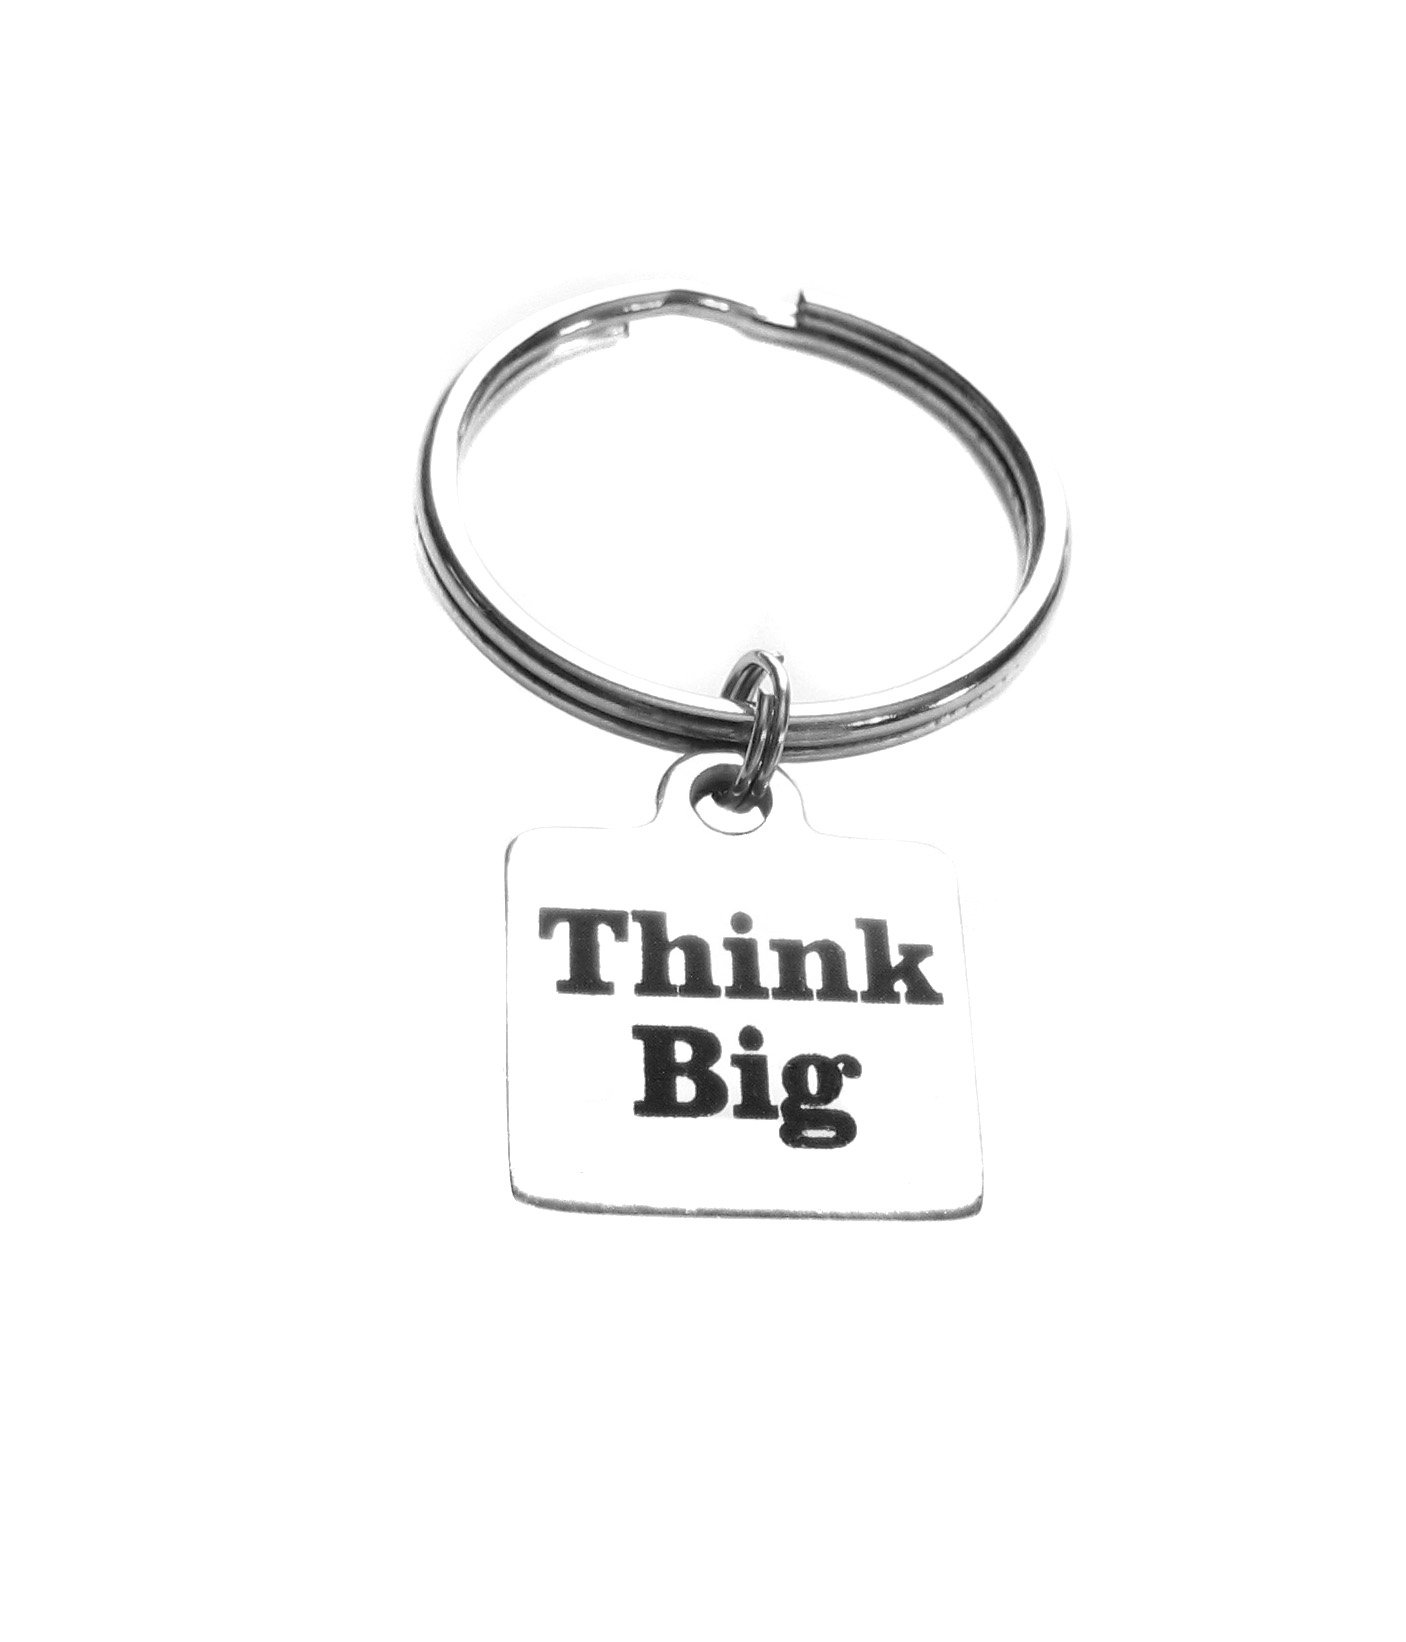 Think Big Stainless Steel Square Charm Keychain, Luggage Inspirational Gift